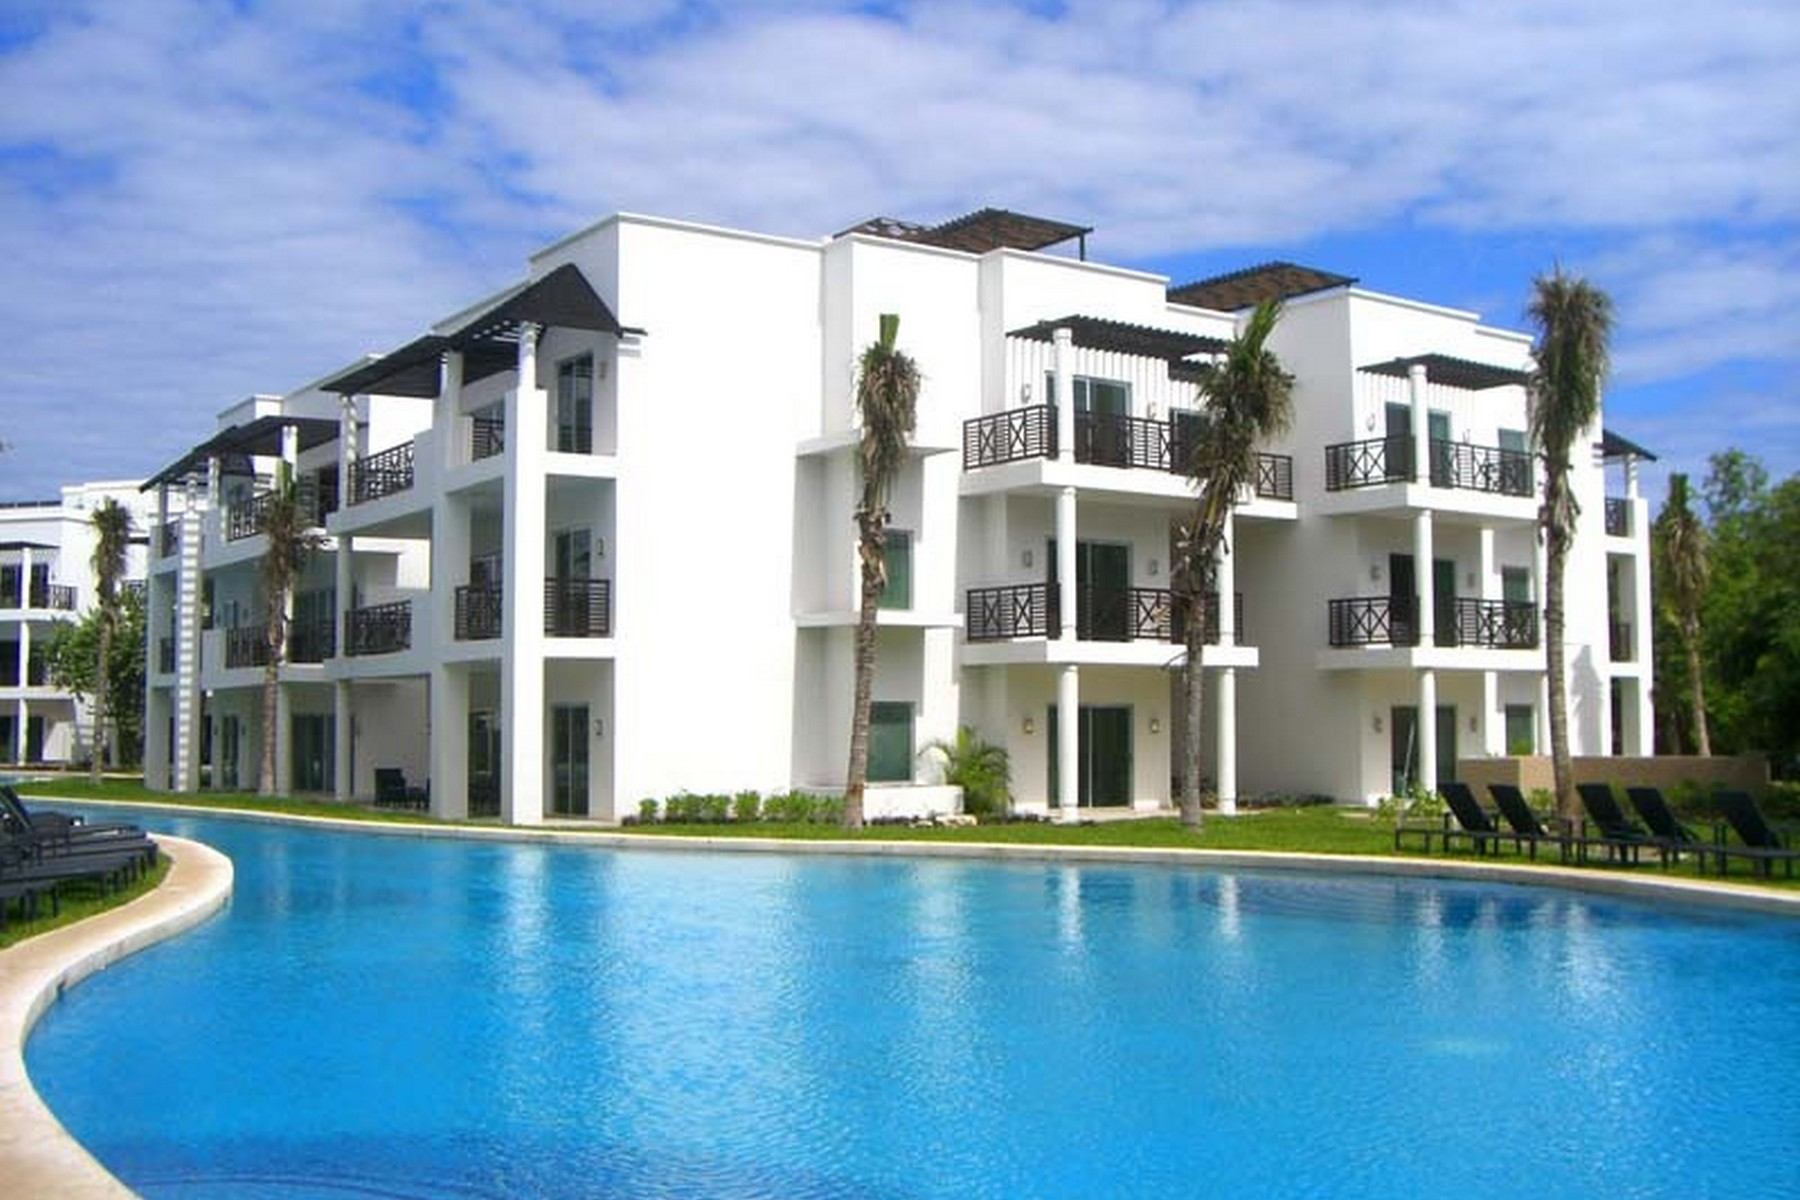 Condominium for Sale at PENTHOUSE XCALACOCO Playa Del Carmen, Quintana Roo, 77710 Mexico